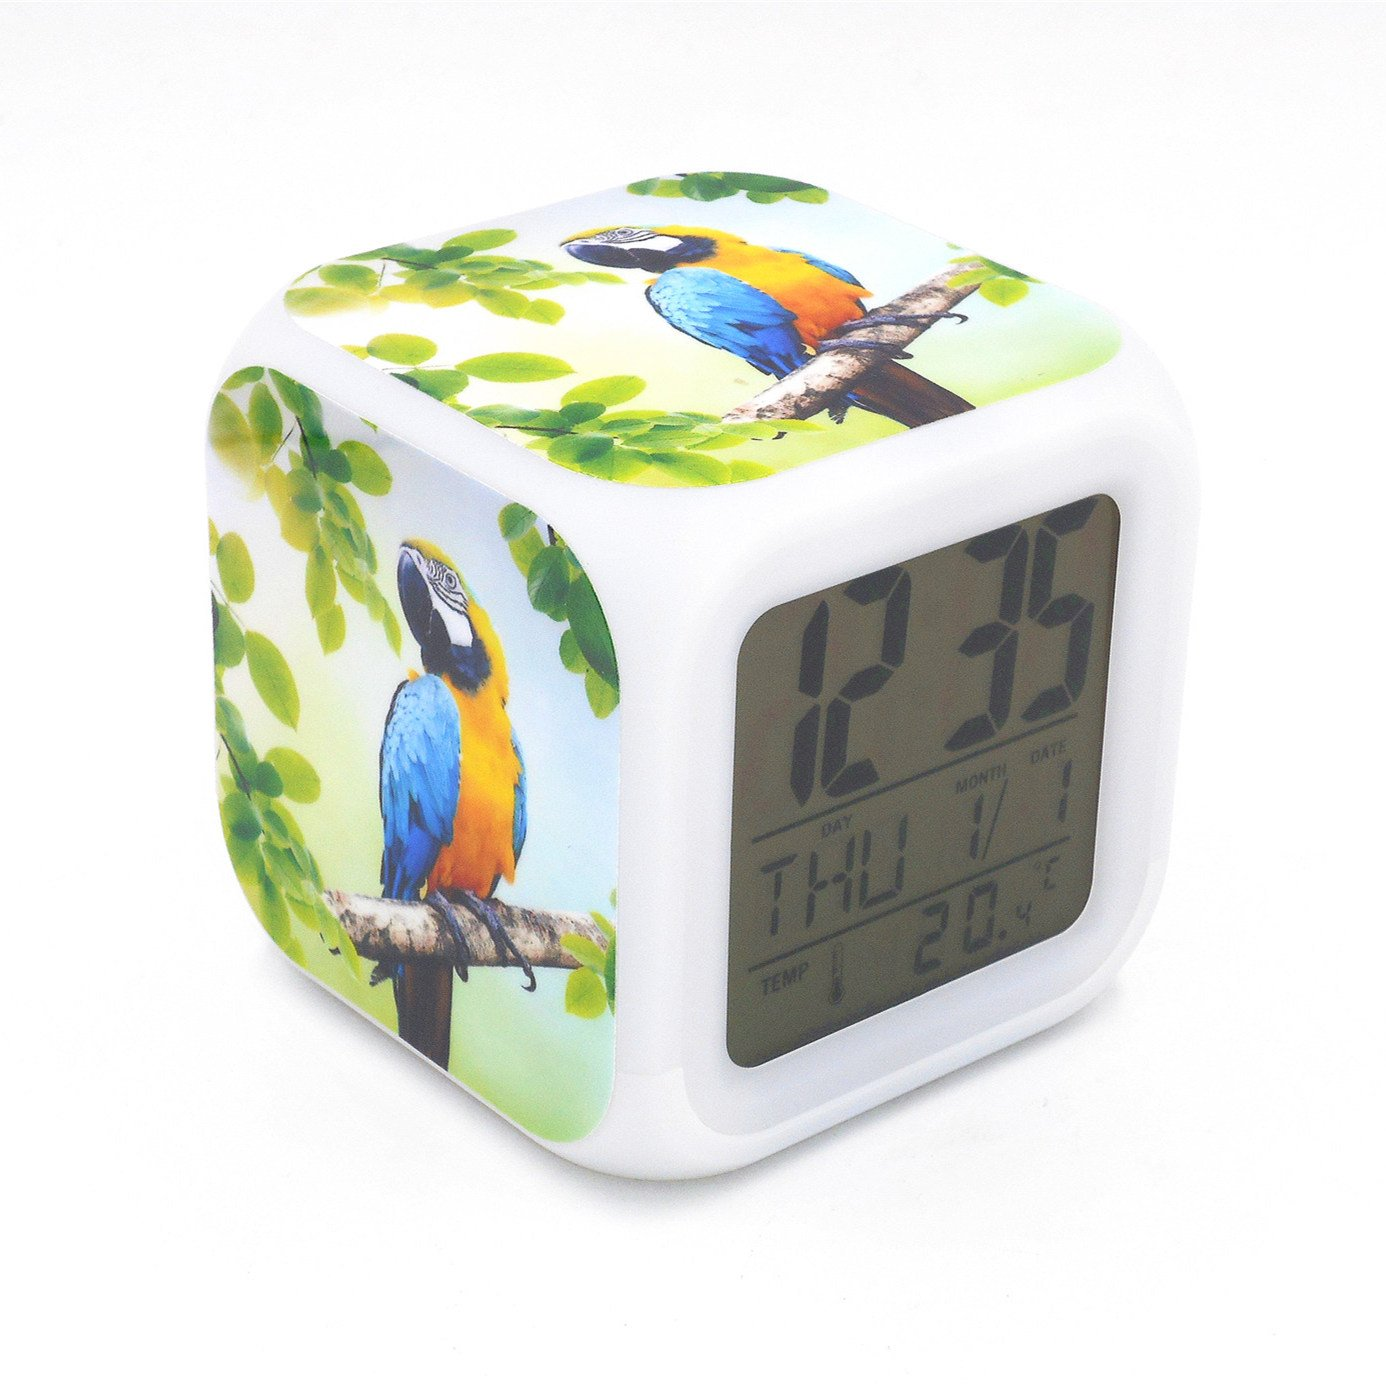 EGS New Blue-and-yellow Macaw Parrot Bird Animal Digital Alarm Clock Desk Table Led Alarm Clock Creative Personalized Multifunctional Battery Alarm Clock Special Toy Gift for Unisex Kids Adults